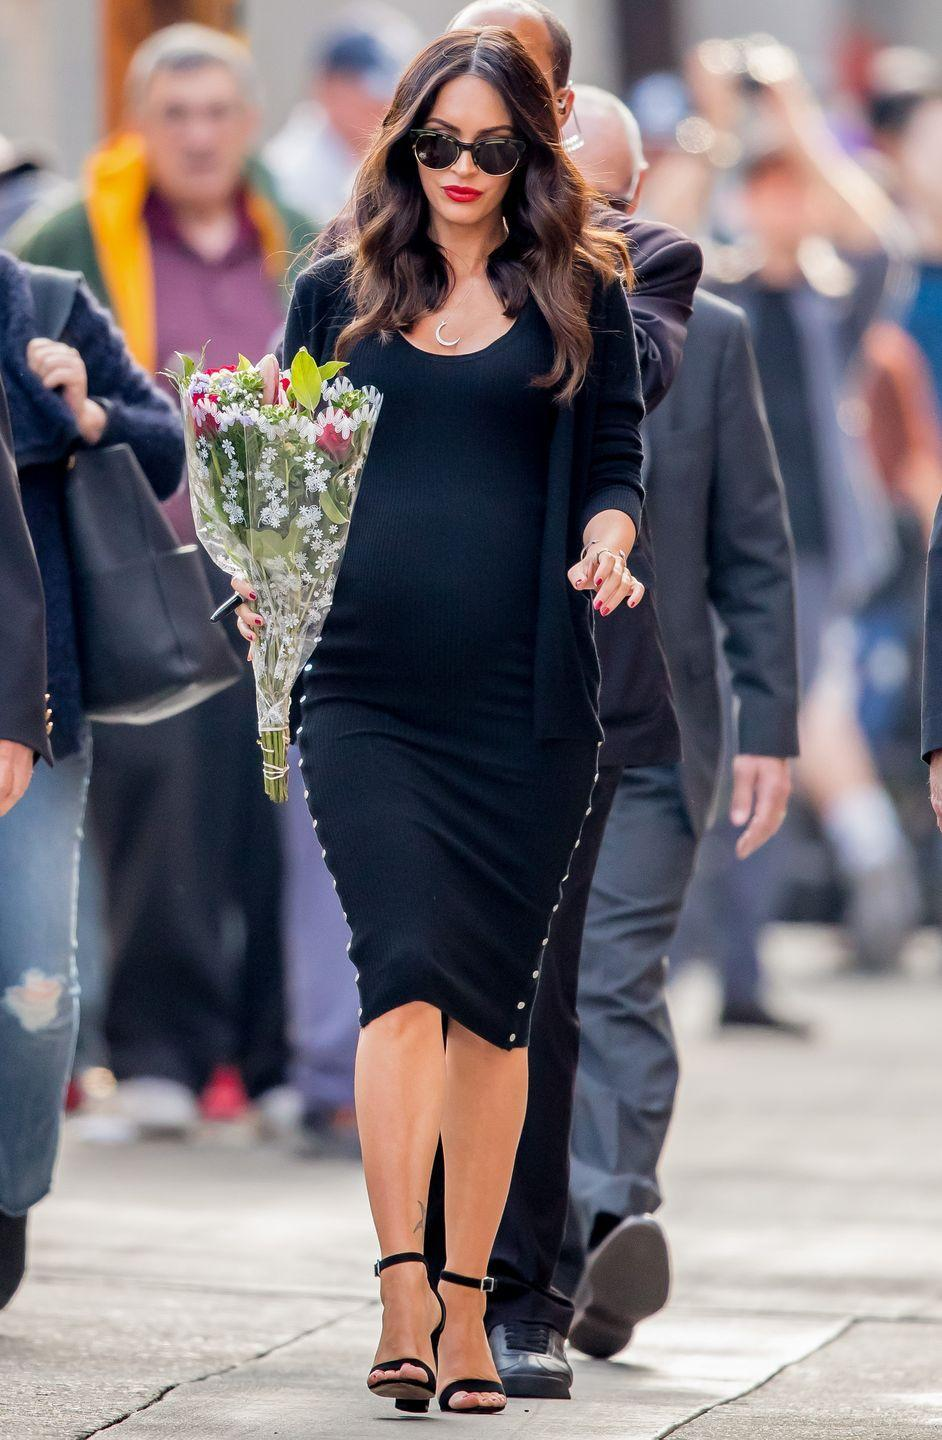 <p>Fox styled her pregnancy bump in a black knitted midi dress, black heels and a black knitted cardigan. She accessorised the look with a bunch of flowers, a red lip and sunglasses. </p>